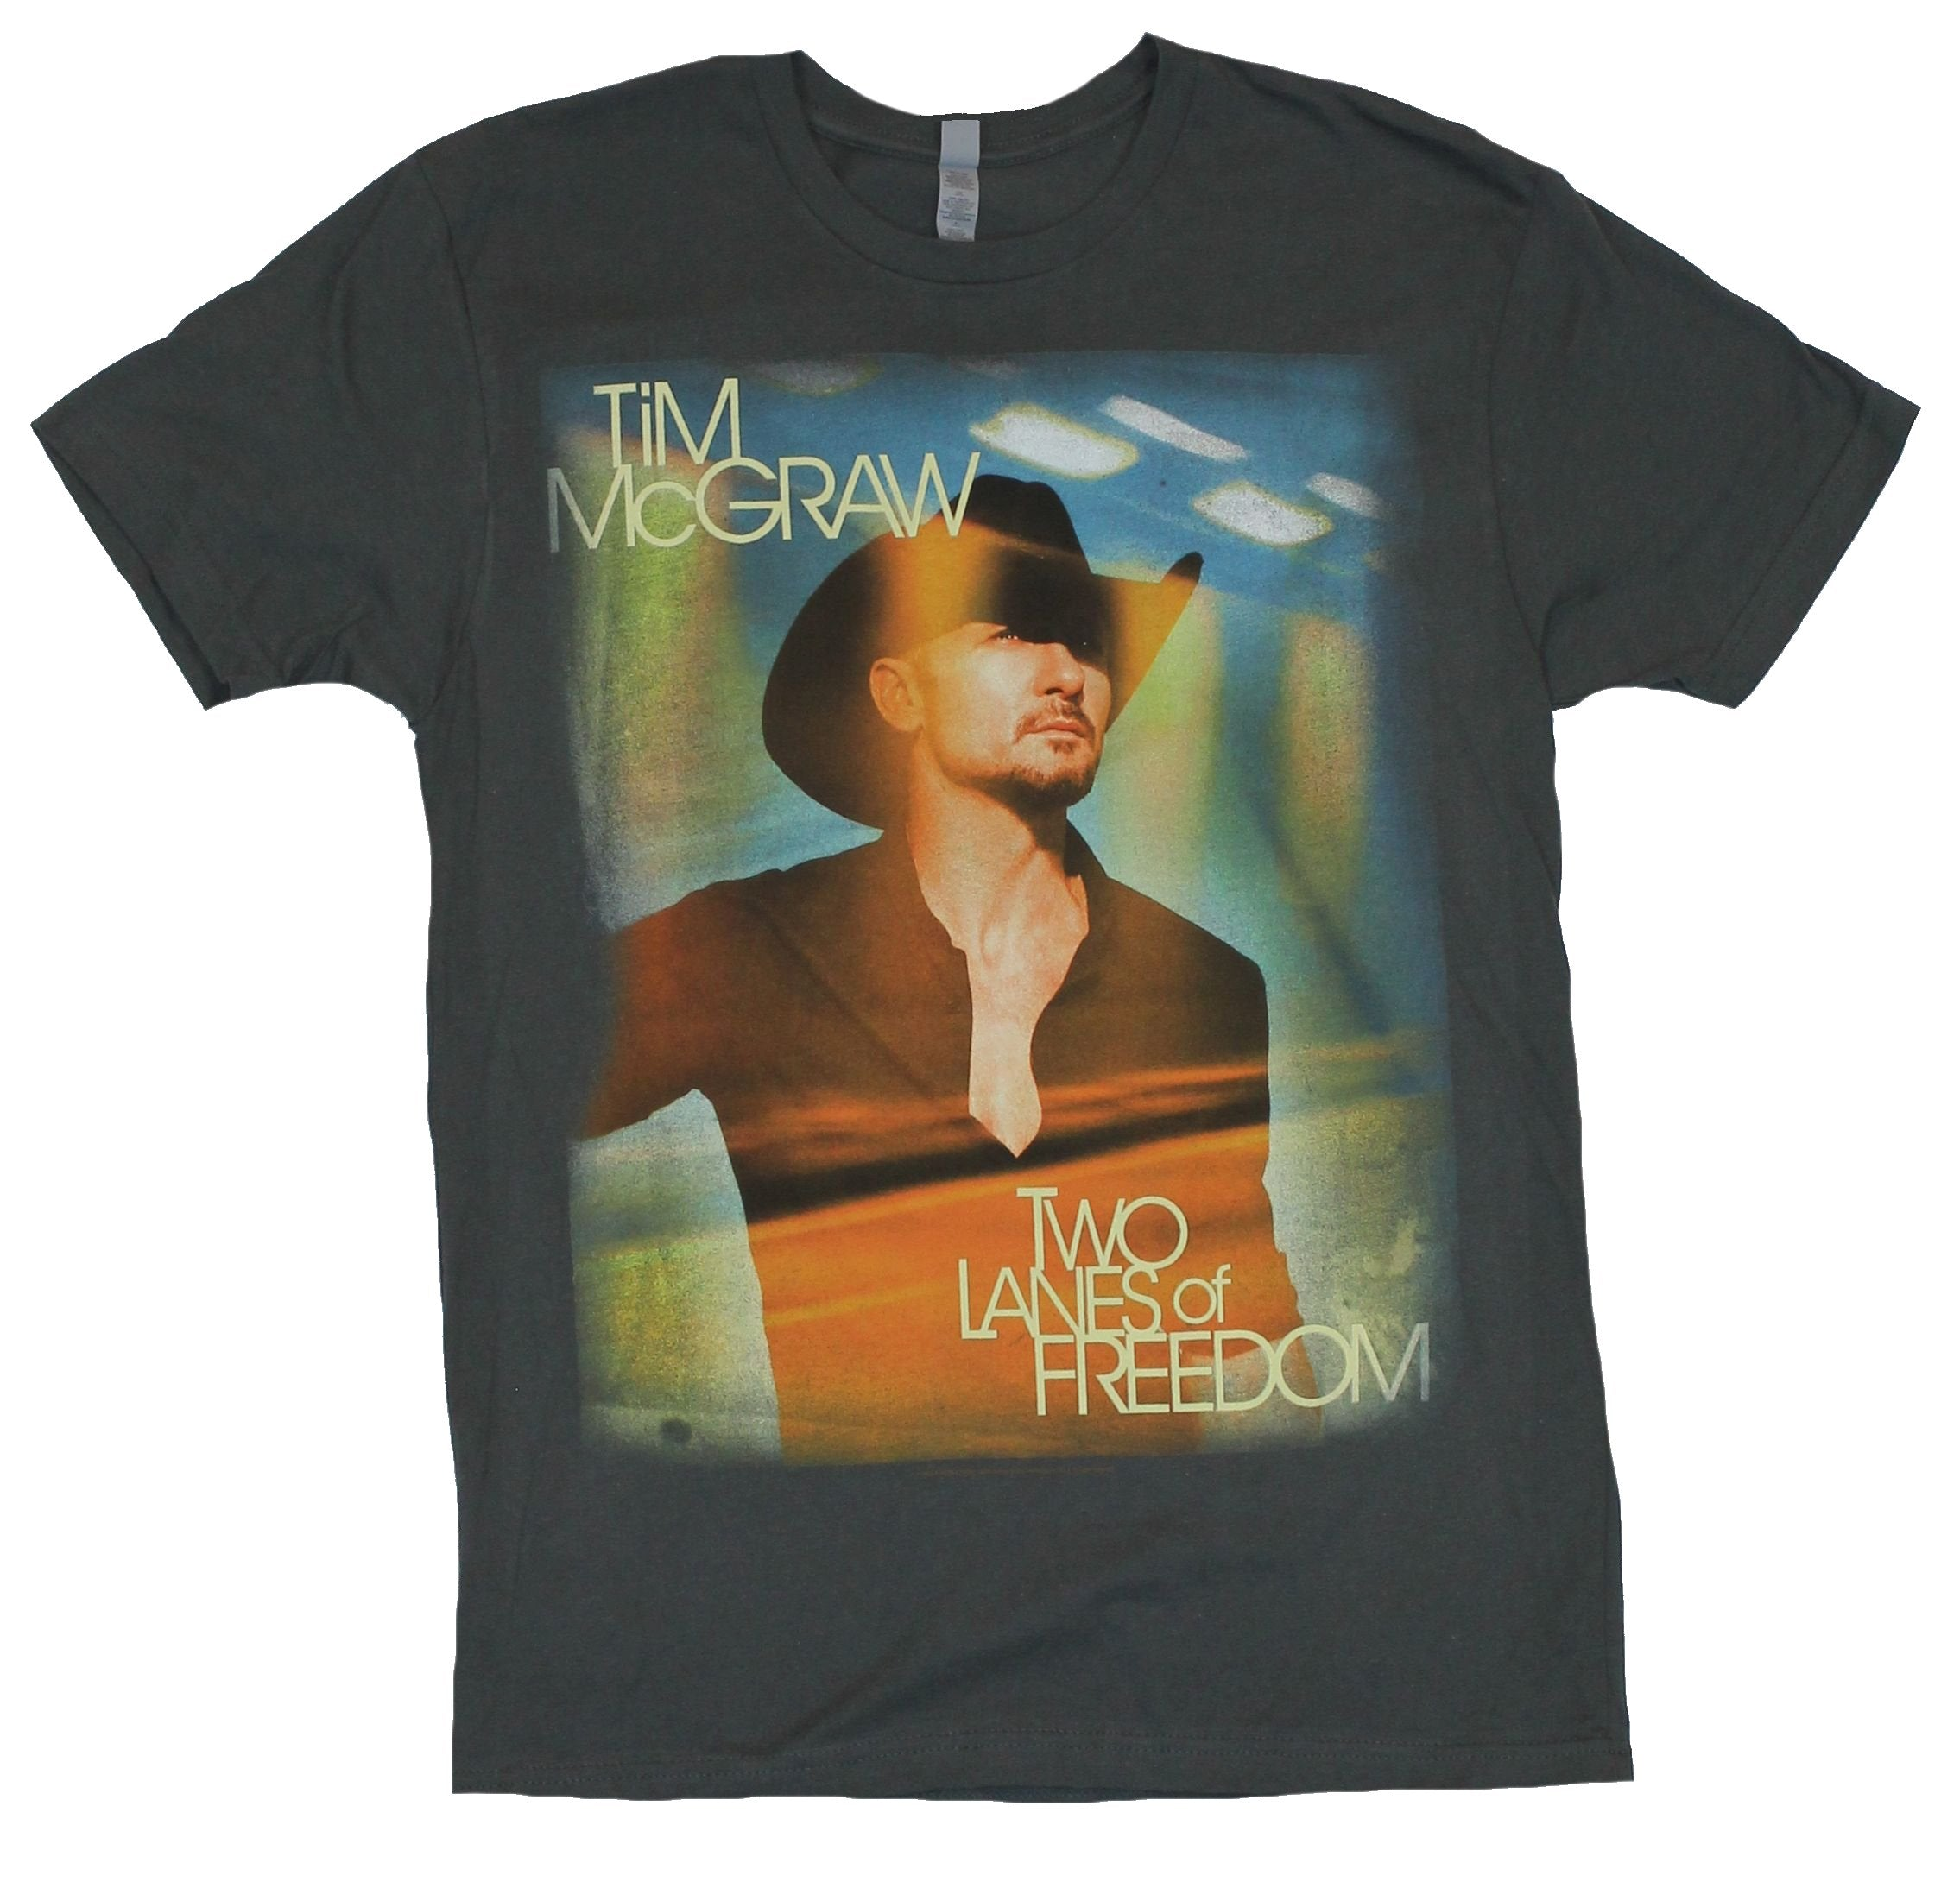 Tim Mcgraw Mens T-Shirt - Two Lanes of Freedom Tour Shirt Sun Tinted Photo